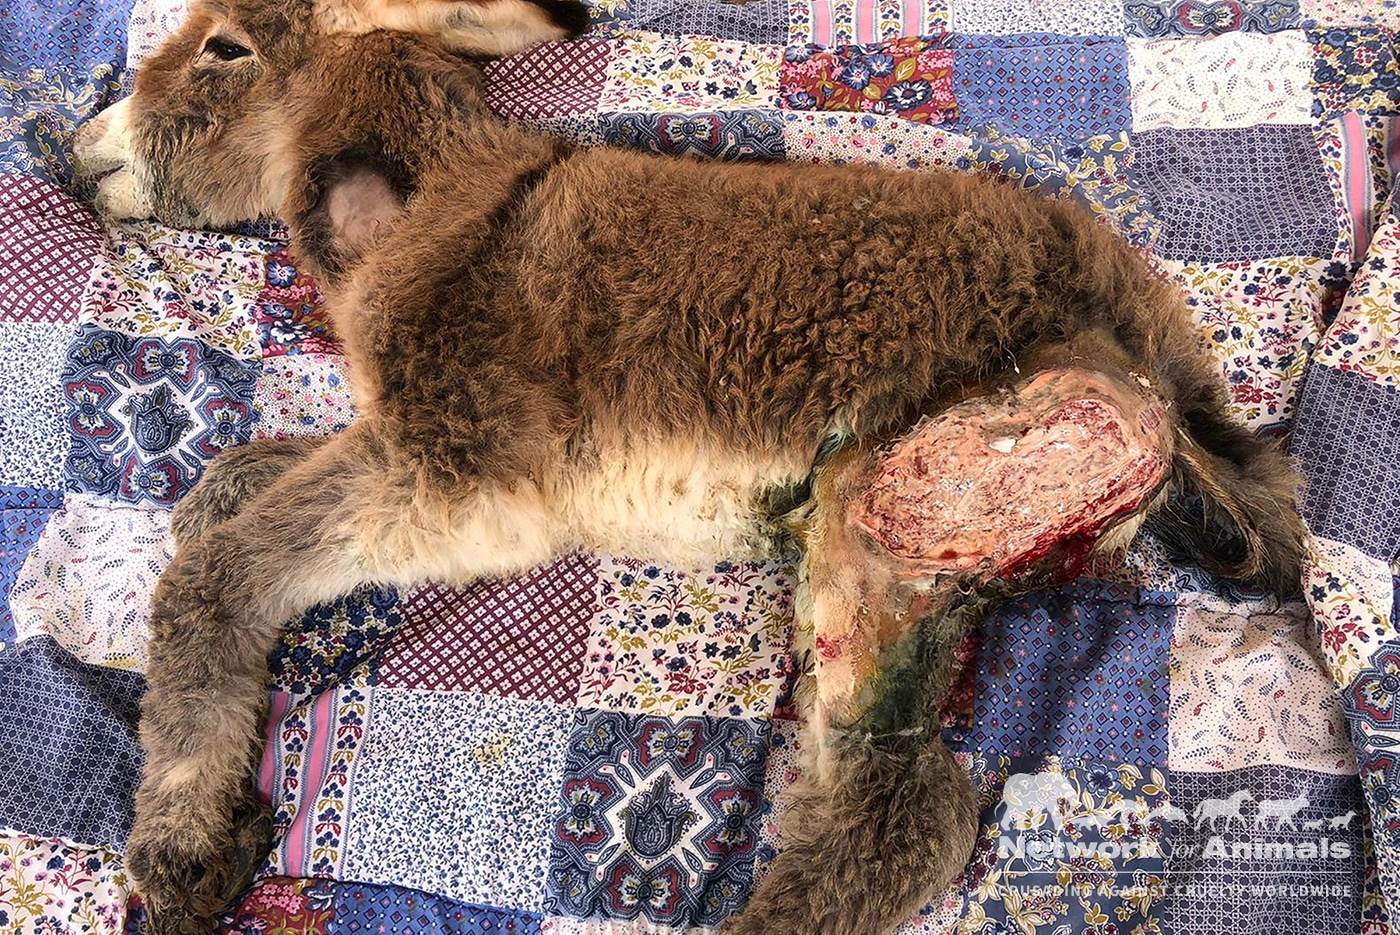 Cruel children separate baby donkey from mother and ABUSE HER! 2